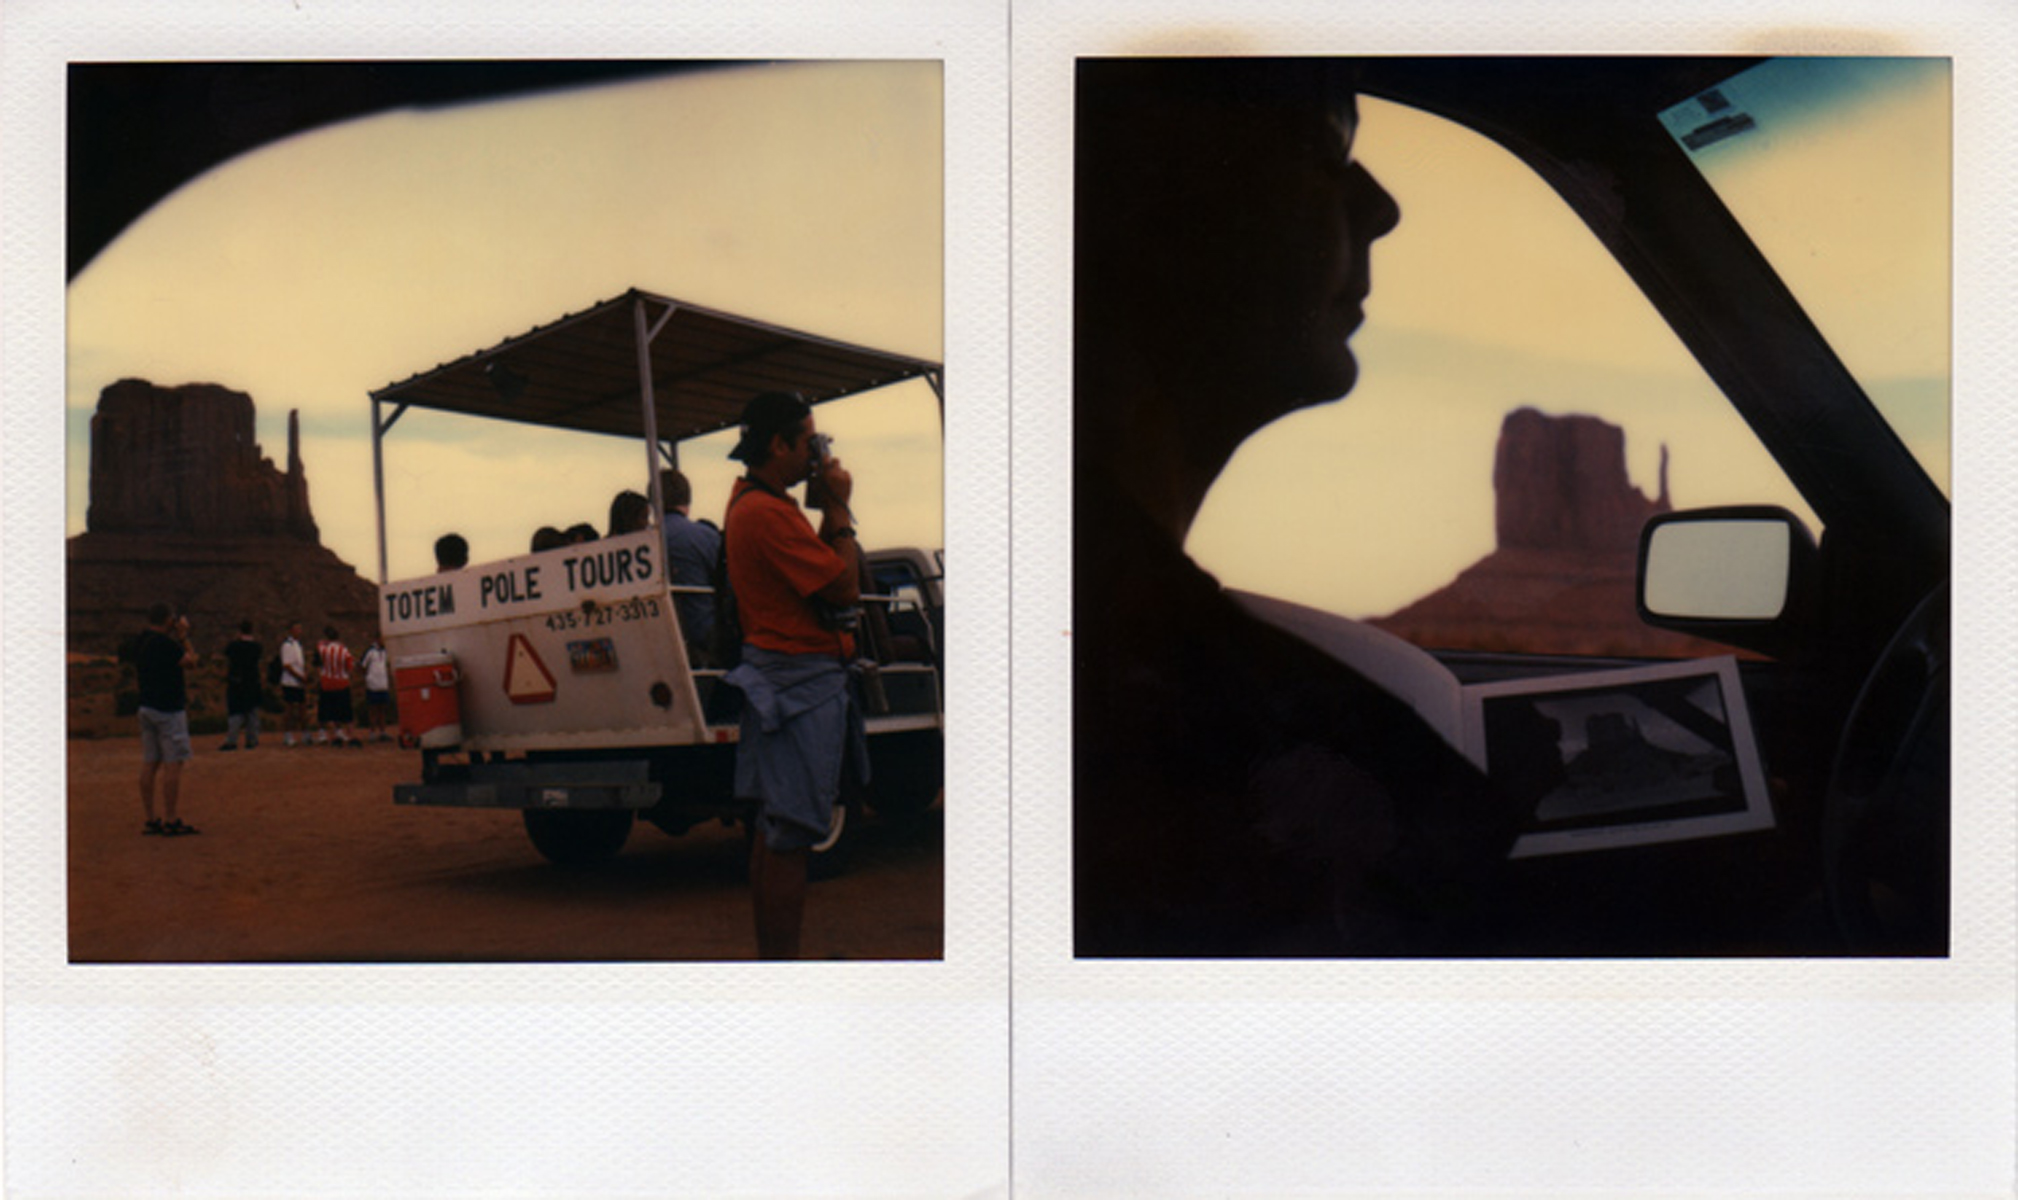 Totem Pole Tours, Monument Valley, Utah, 2004 (left); A self-portrait within a self-portrait, accompanied by the book, {quote}Magnum Landscapes,{quote} by Raymond Depardon, Page 15, Monument Valley, Utah, 2004 (right).